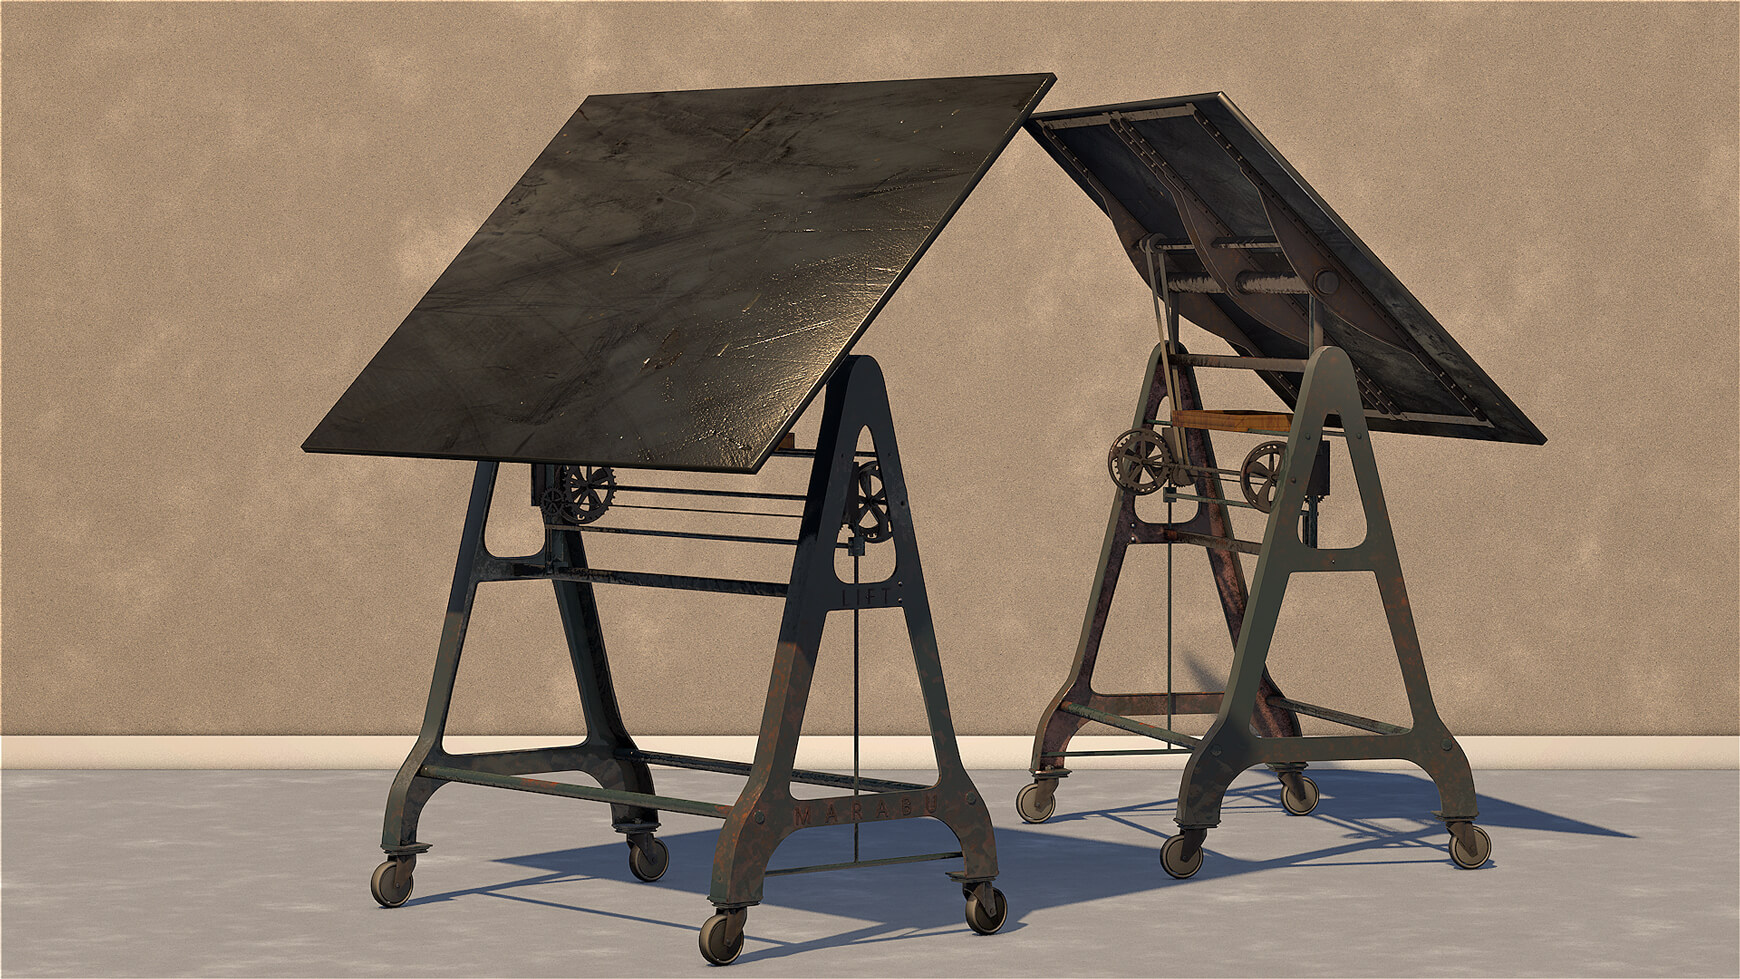 Cool Drafting Table Free Cinema 4d 3d Model Architectural Drafting Board